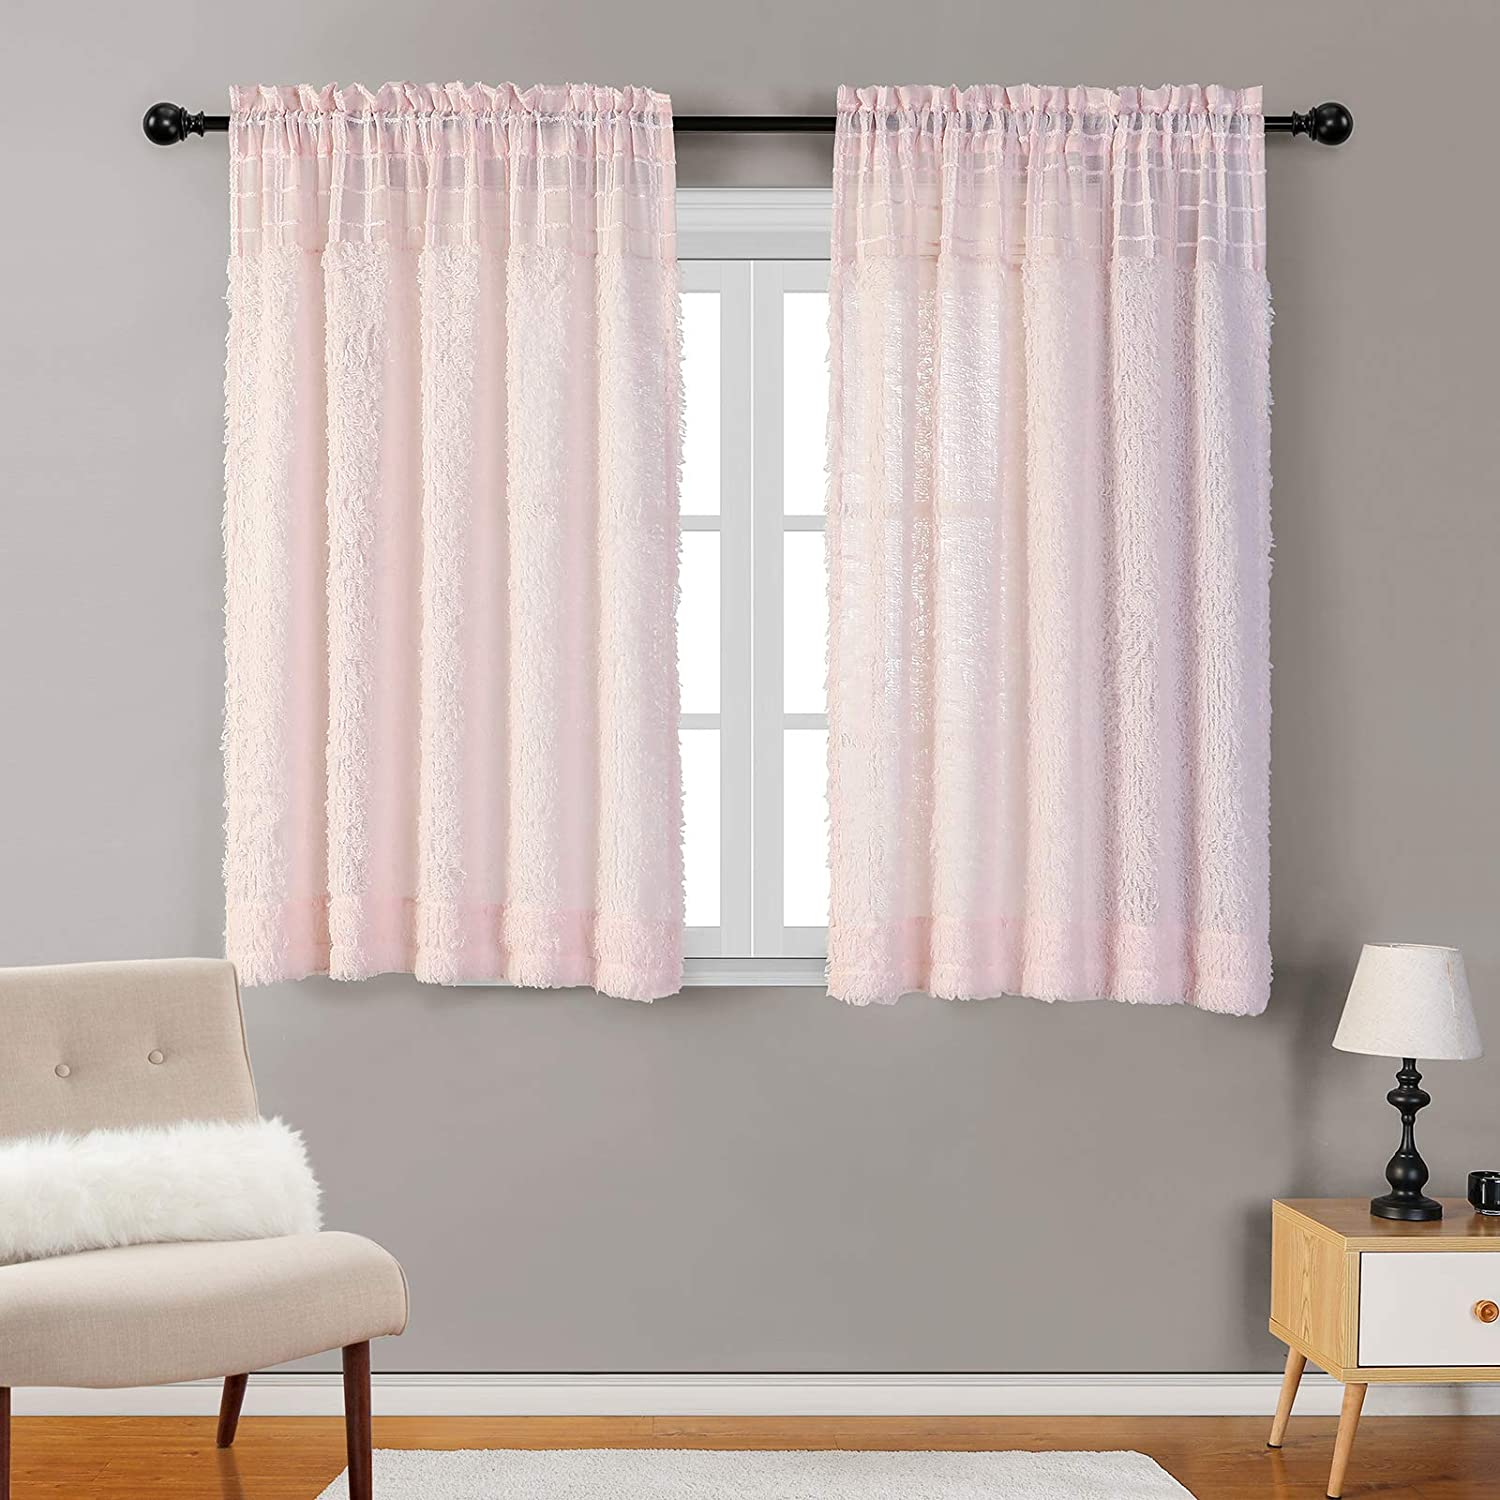 MYSKY HOME Pink Light Filtering Curtains 63 Inch Length Privacy Protection Textured Rod Pocket Sheer Curtains Thermal Insulated Window Treatment Draperies for Nursery Bedroom 2 Panels